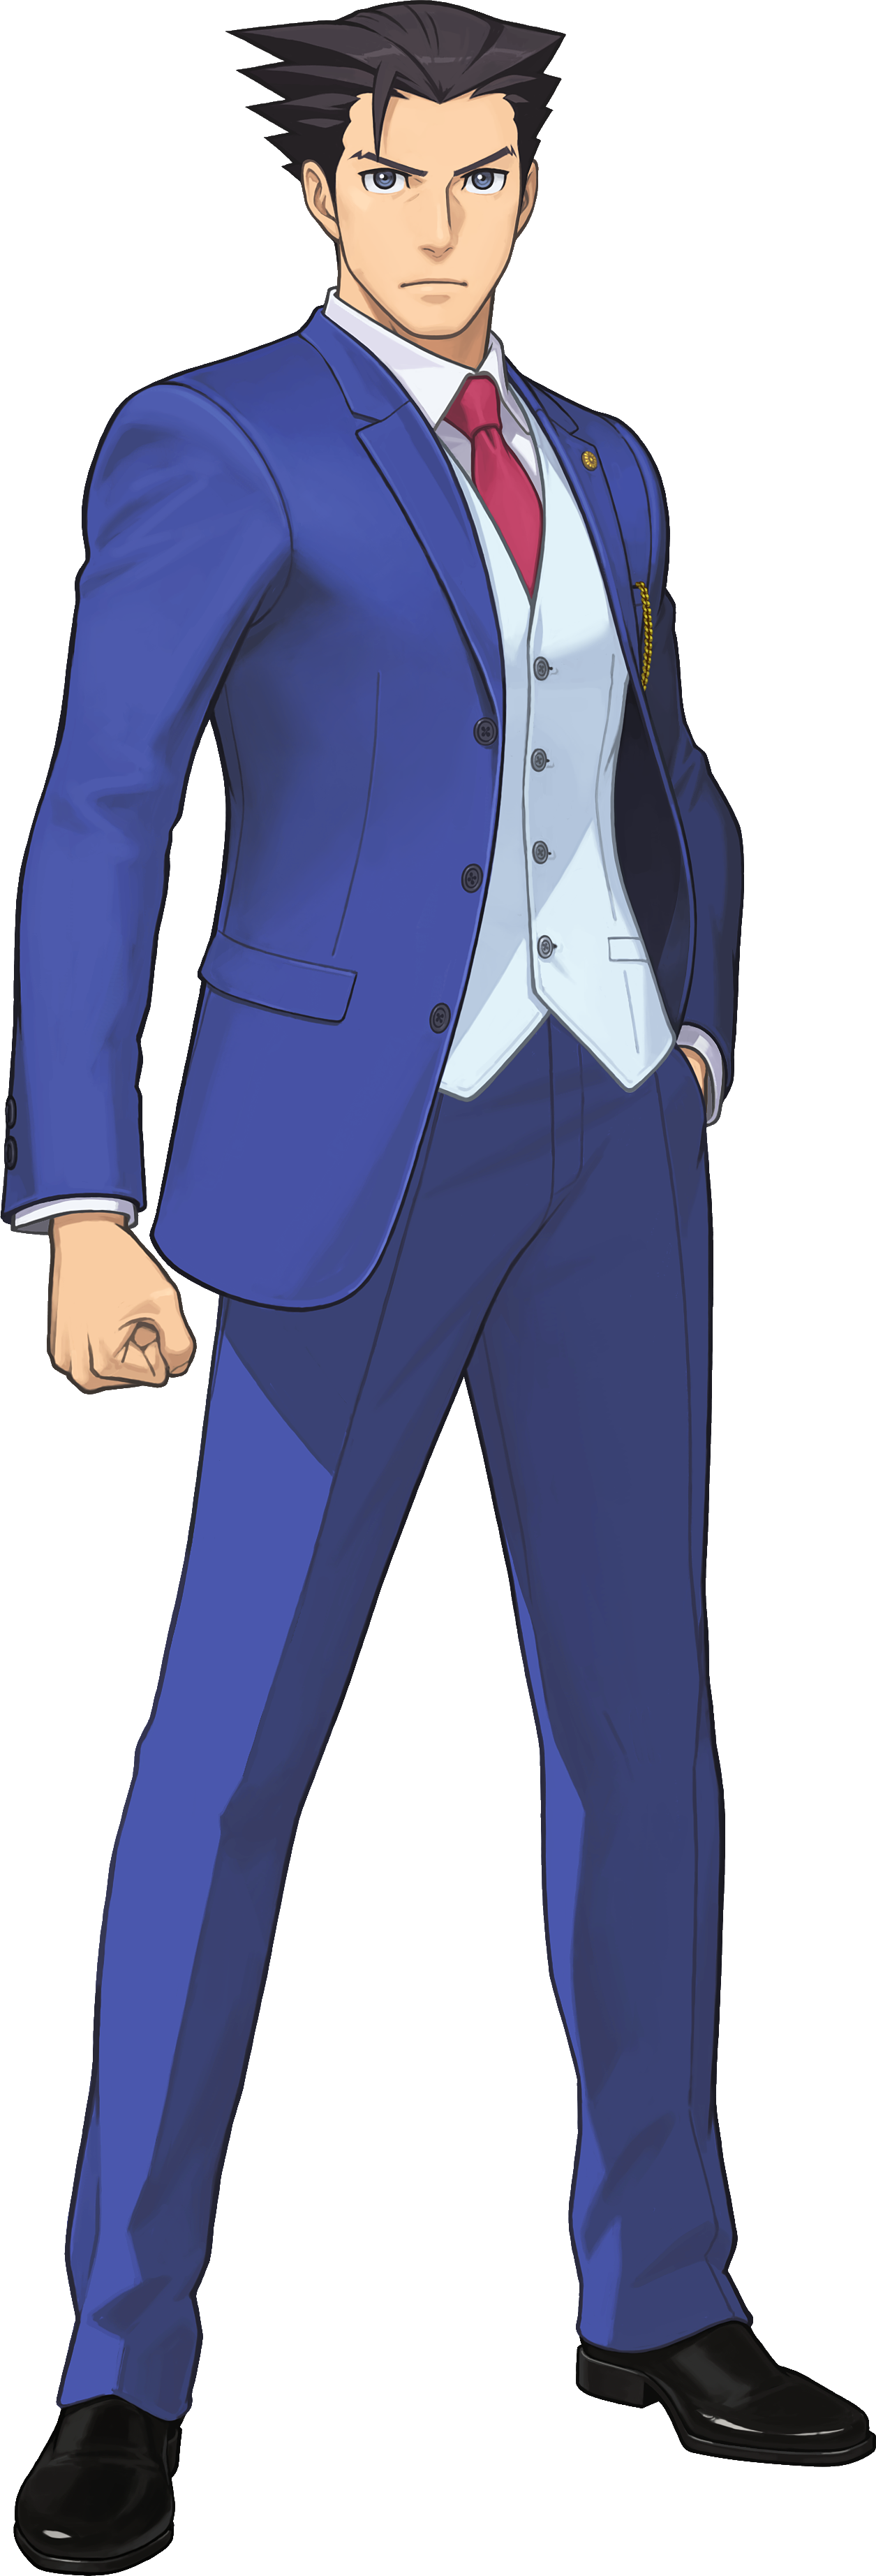 Image - Phoenix wright AA6.png | Ace Attorney Wiki | FANDOM powered by Wikia - Ace Attorney HD PNG